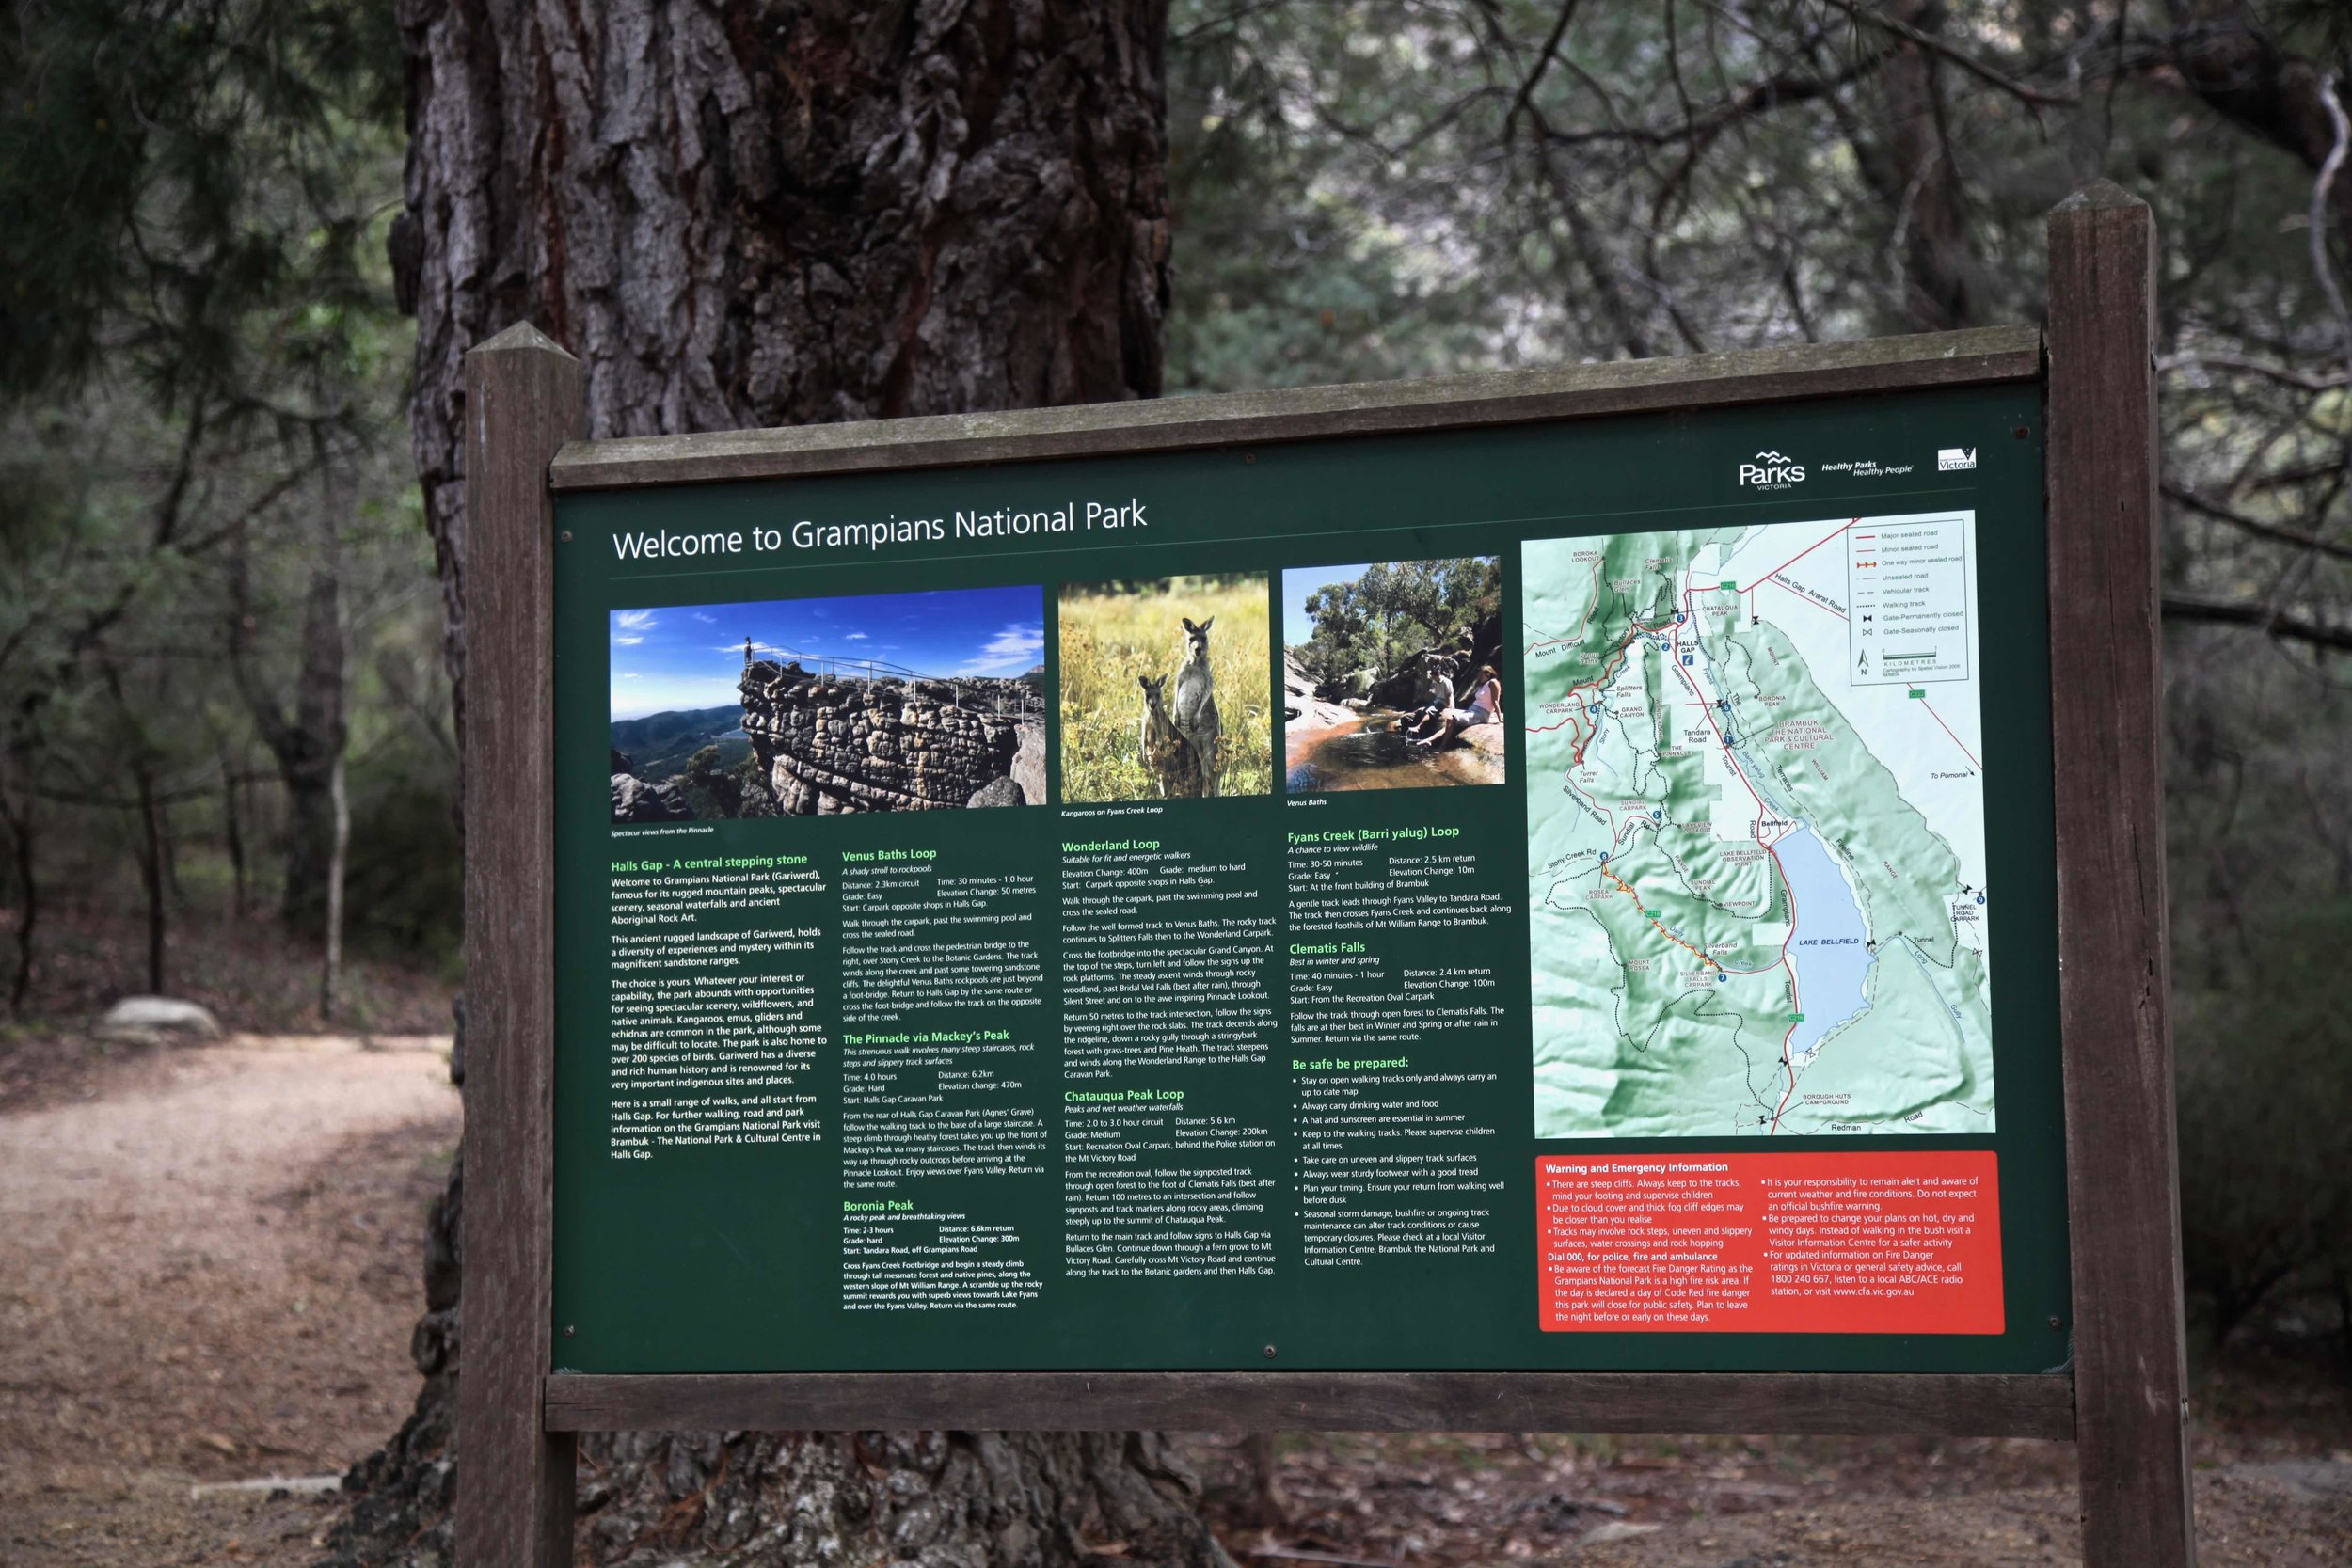 The Grampians National Park is located in Victoria.